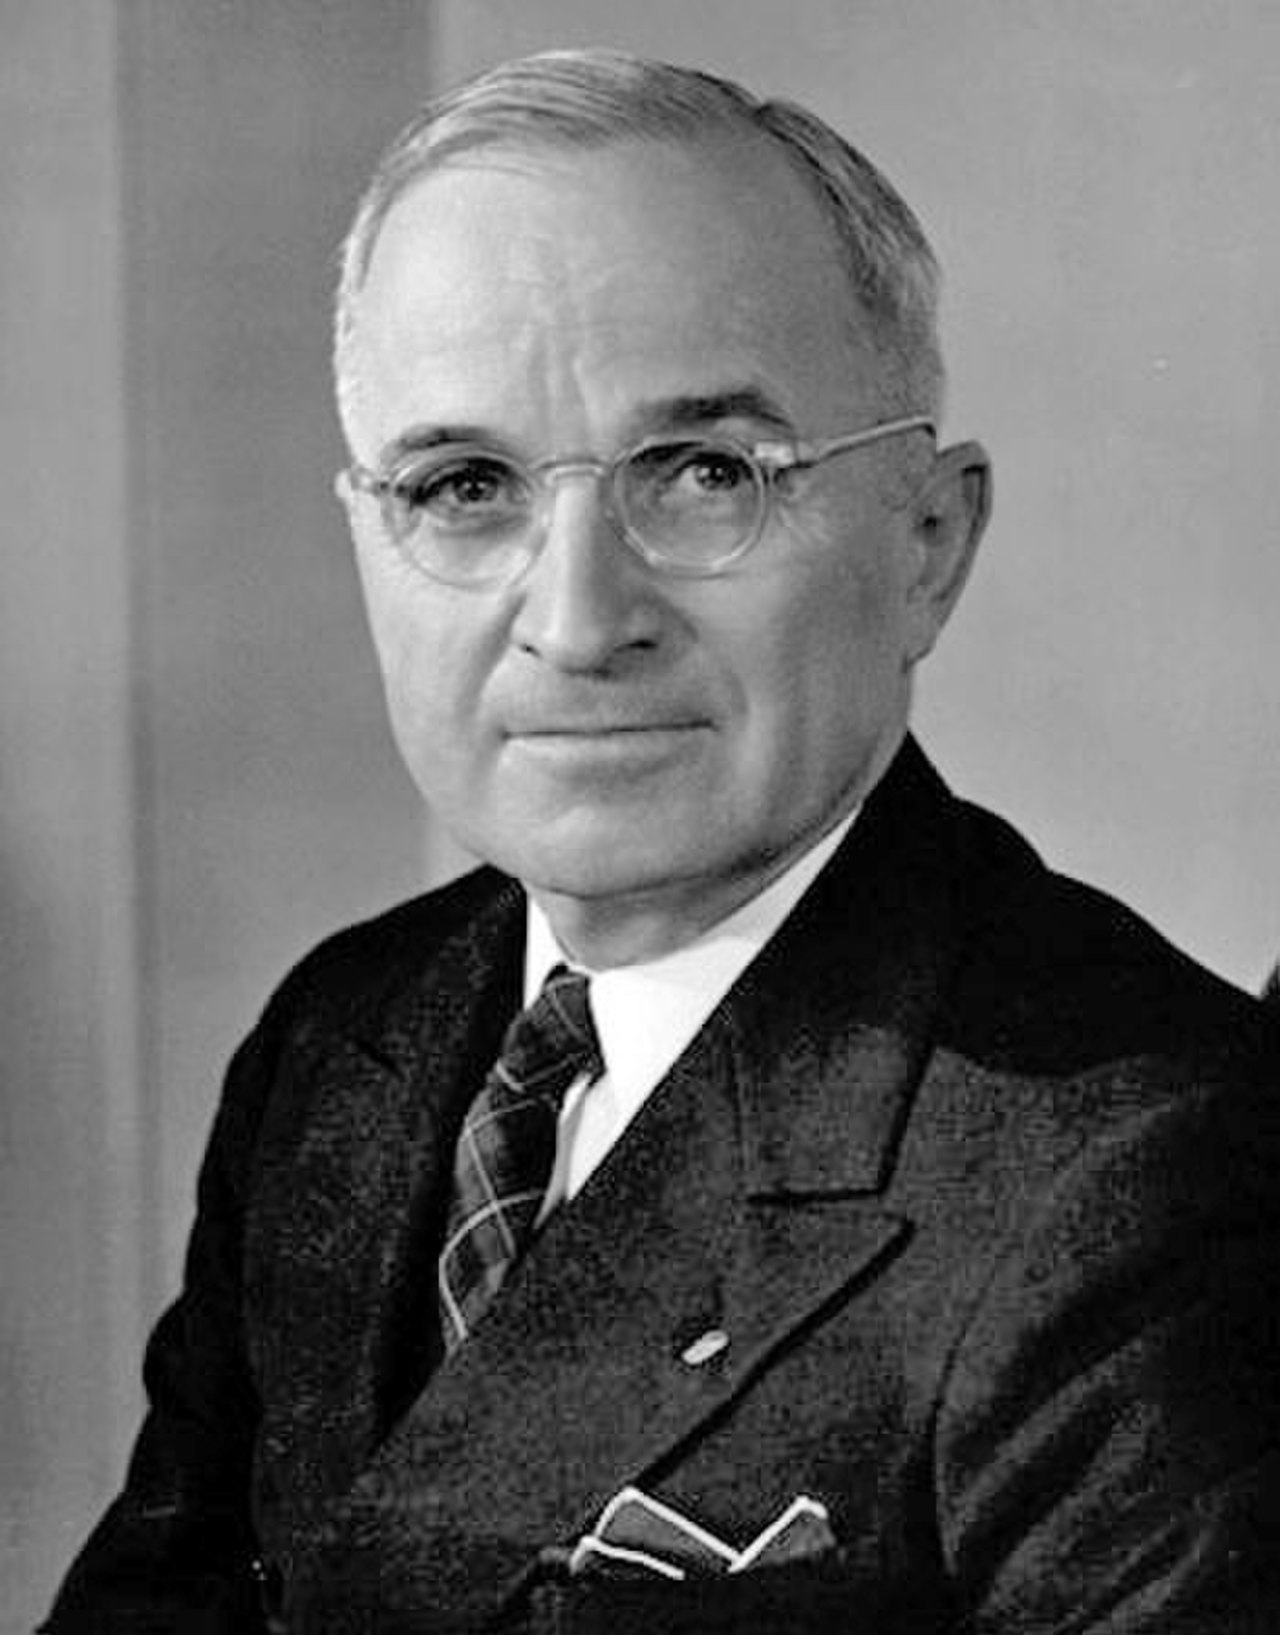 Fil:Harry S. Truman.jpg